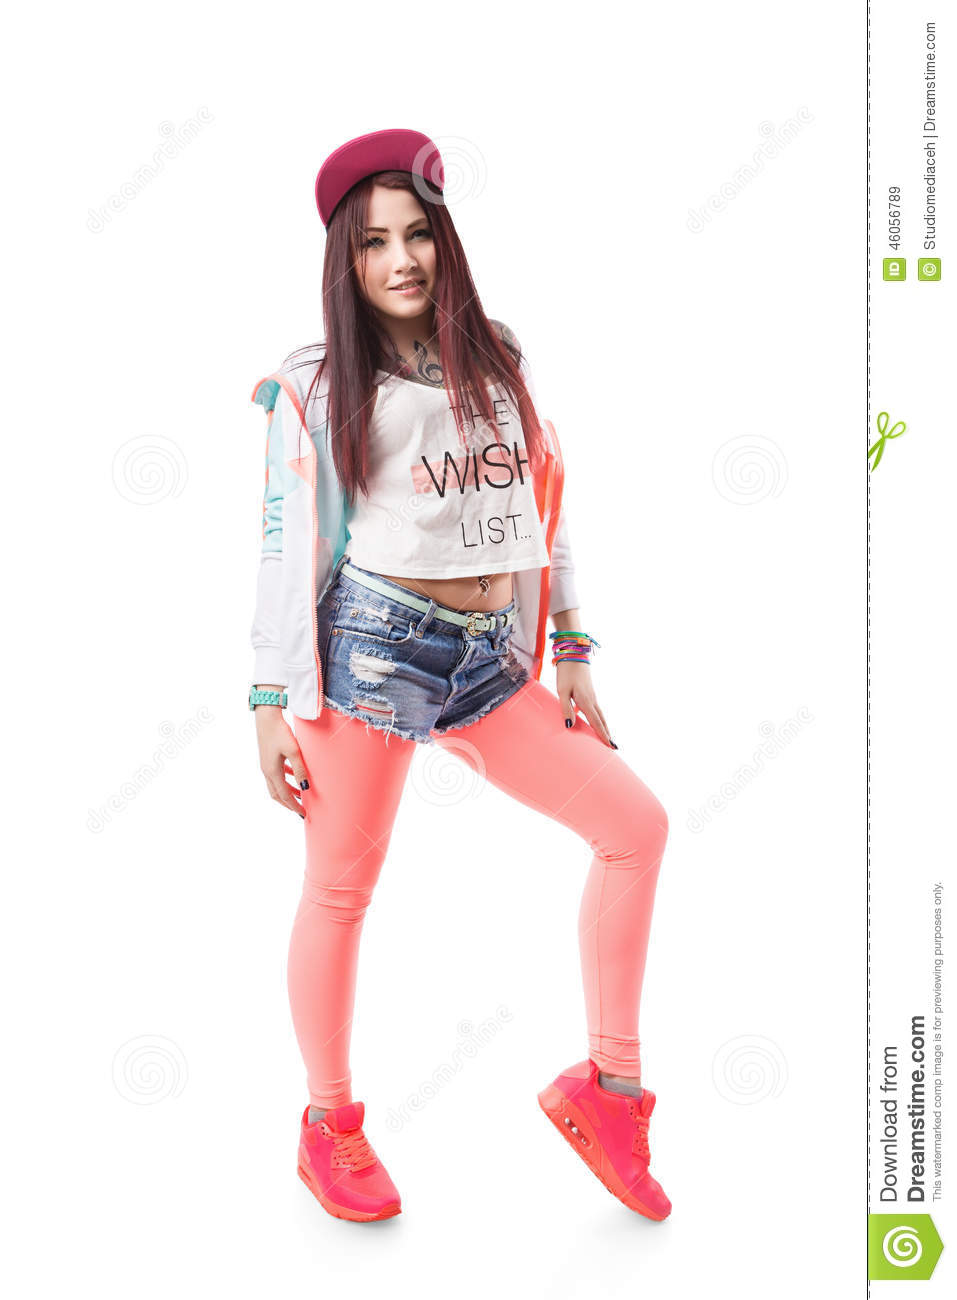 Young Hip,hop Swag Girl In Pink Tight Leggings, Crop Top And